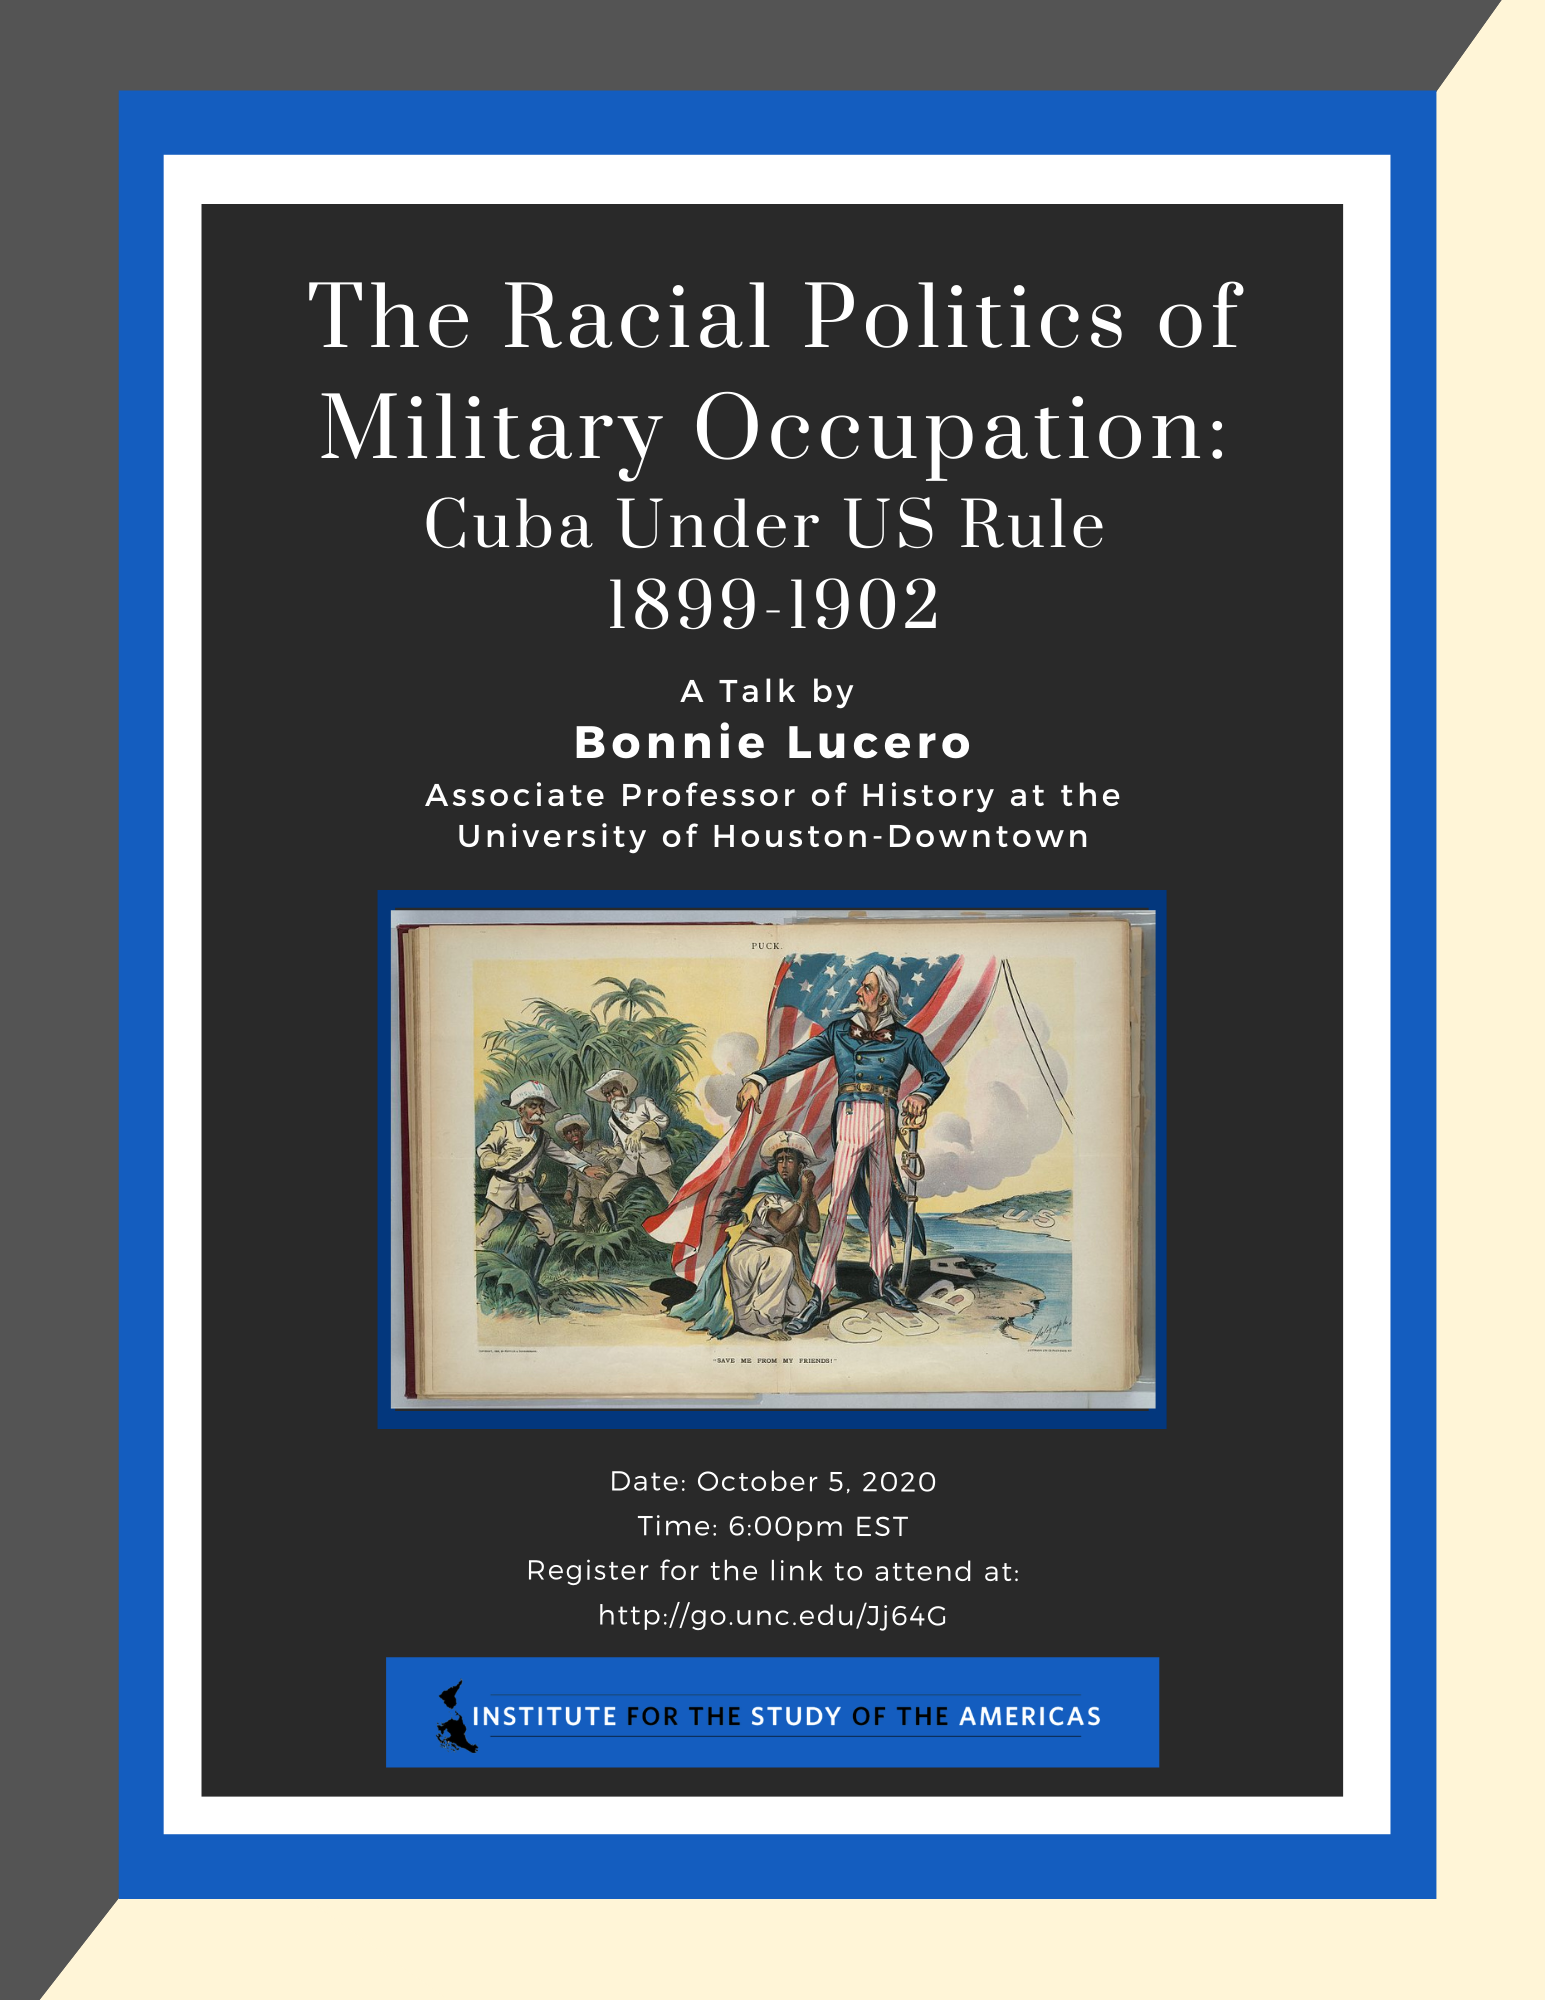 The Racial Politics of Military Occupation: Cuba under US Rule